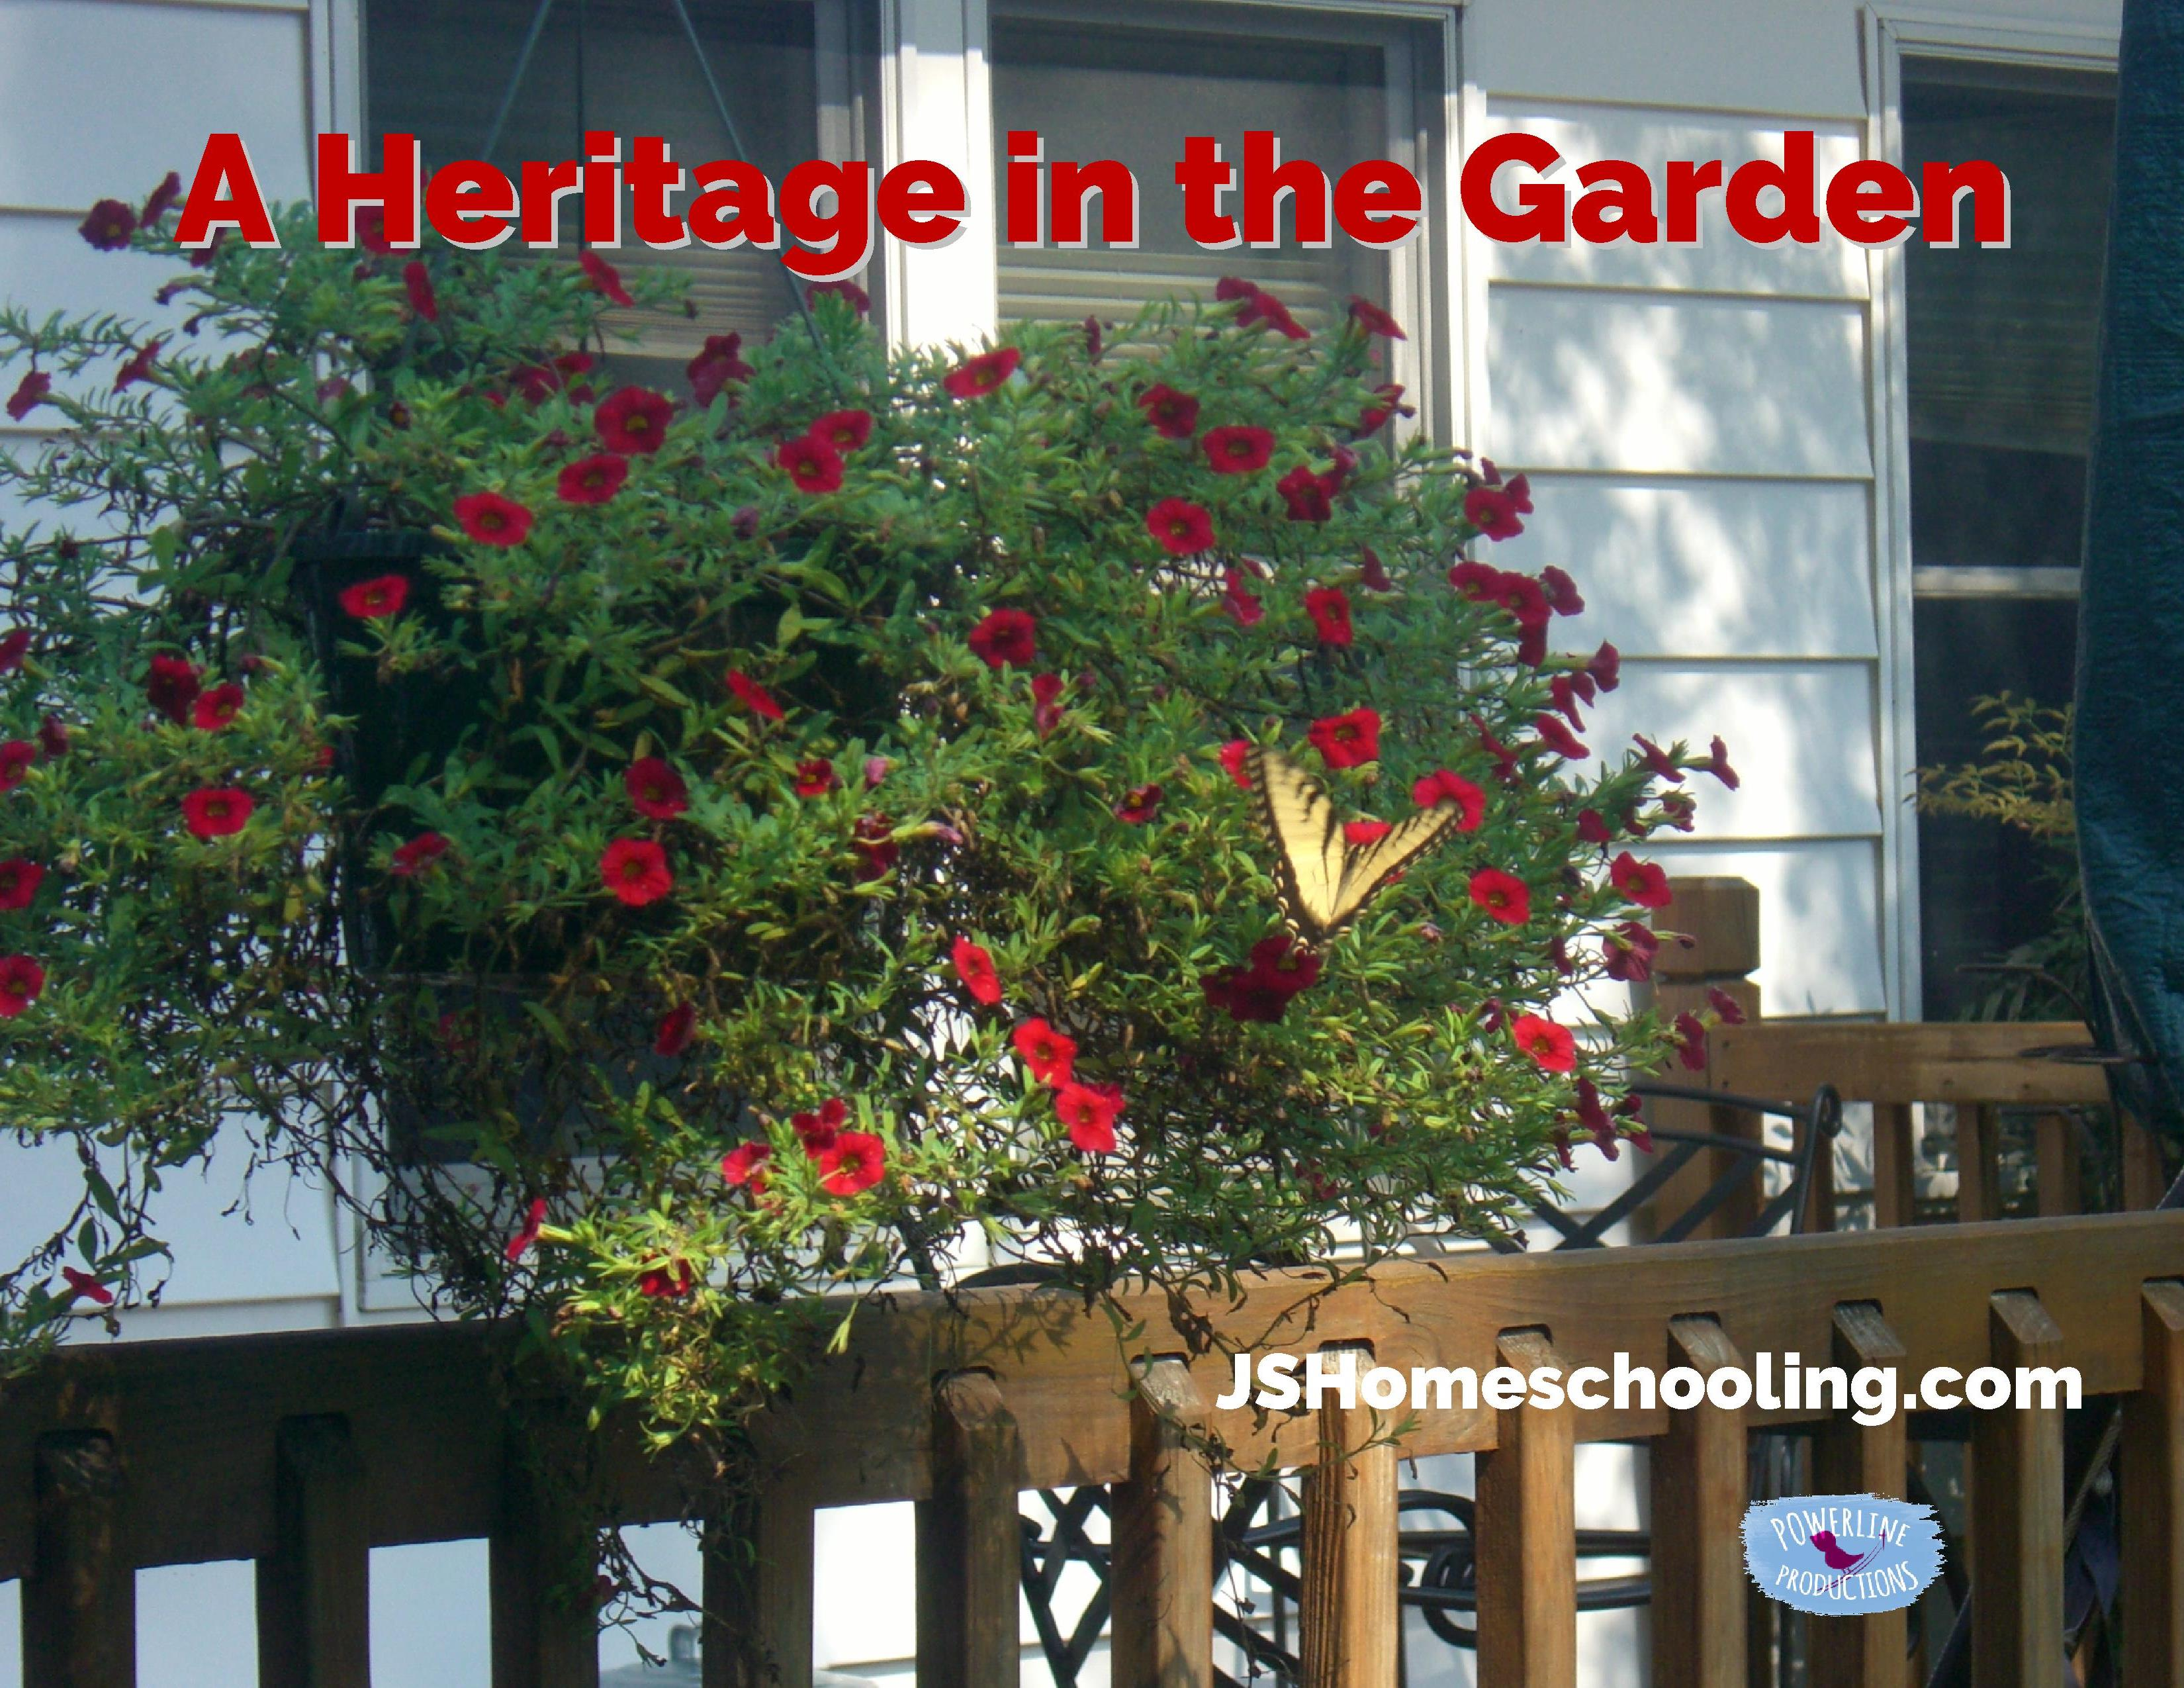 A Heritage in the Garden